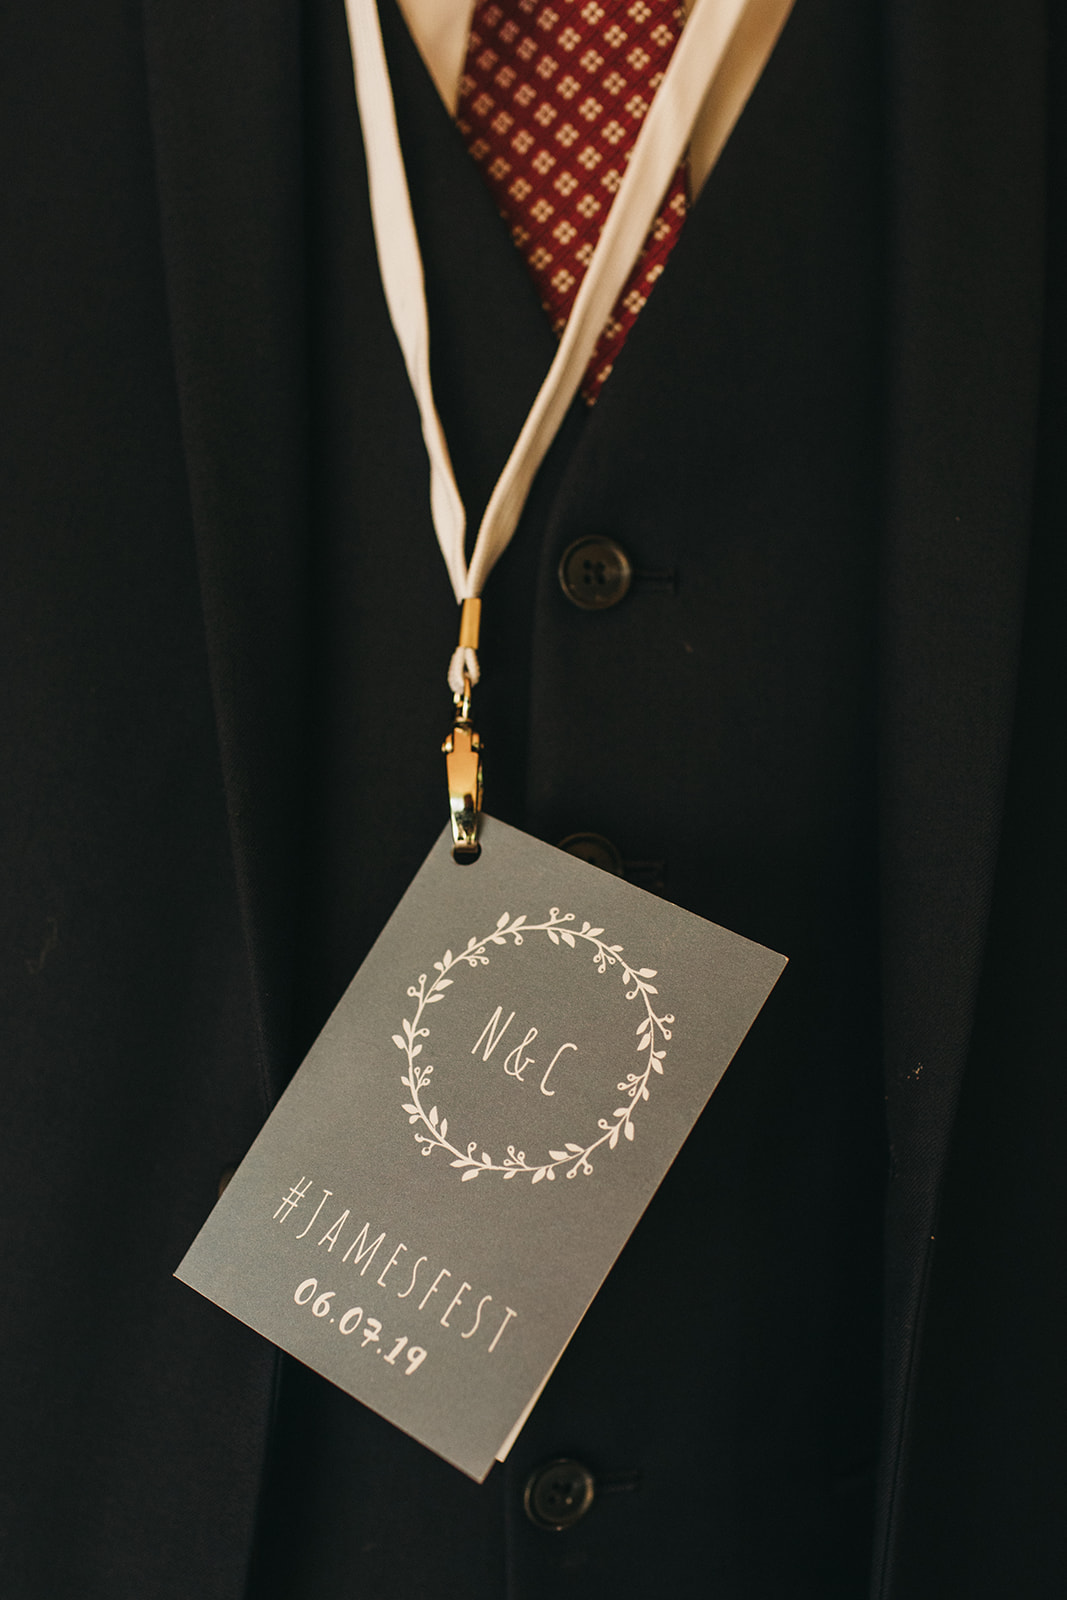 Wedding lanyard